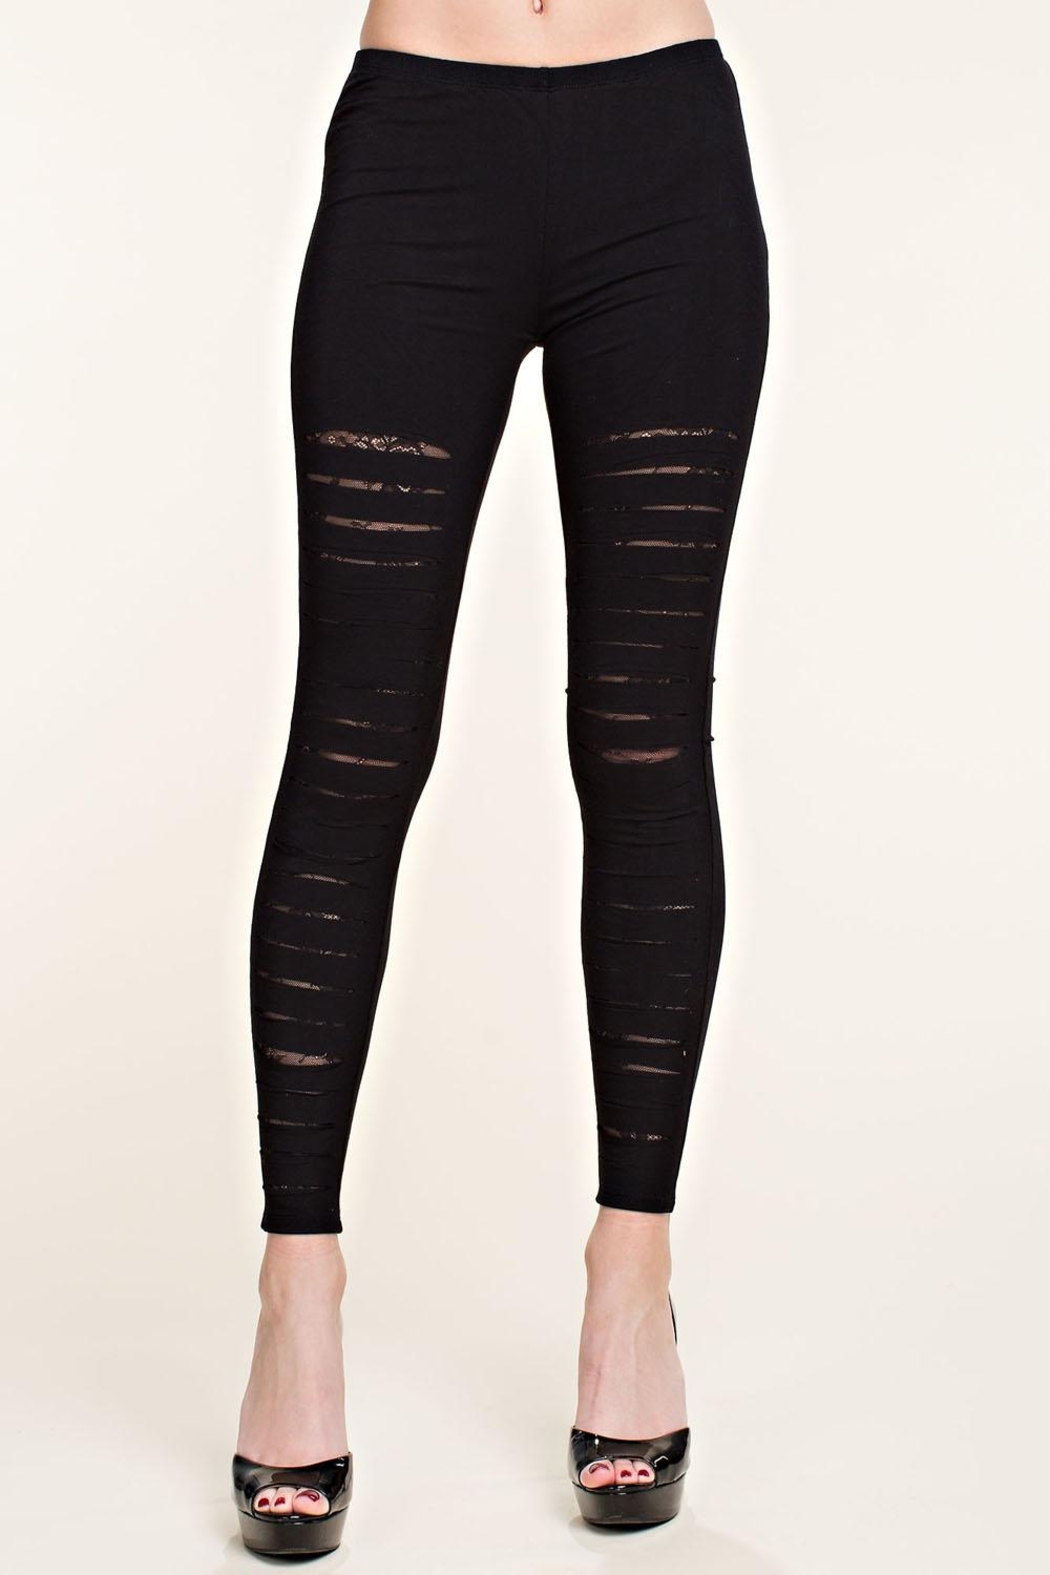 Vocal Apparel Laser Cut Legging With Lace Detail - Main Image